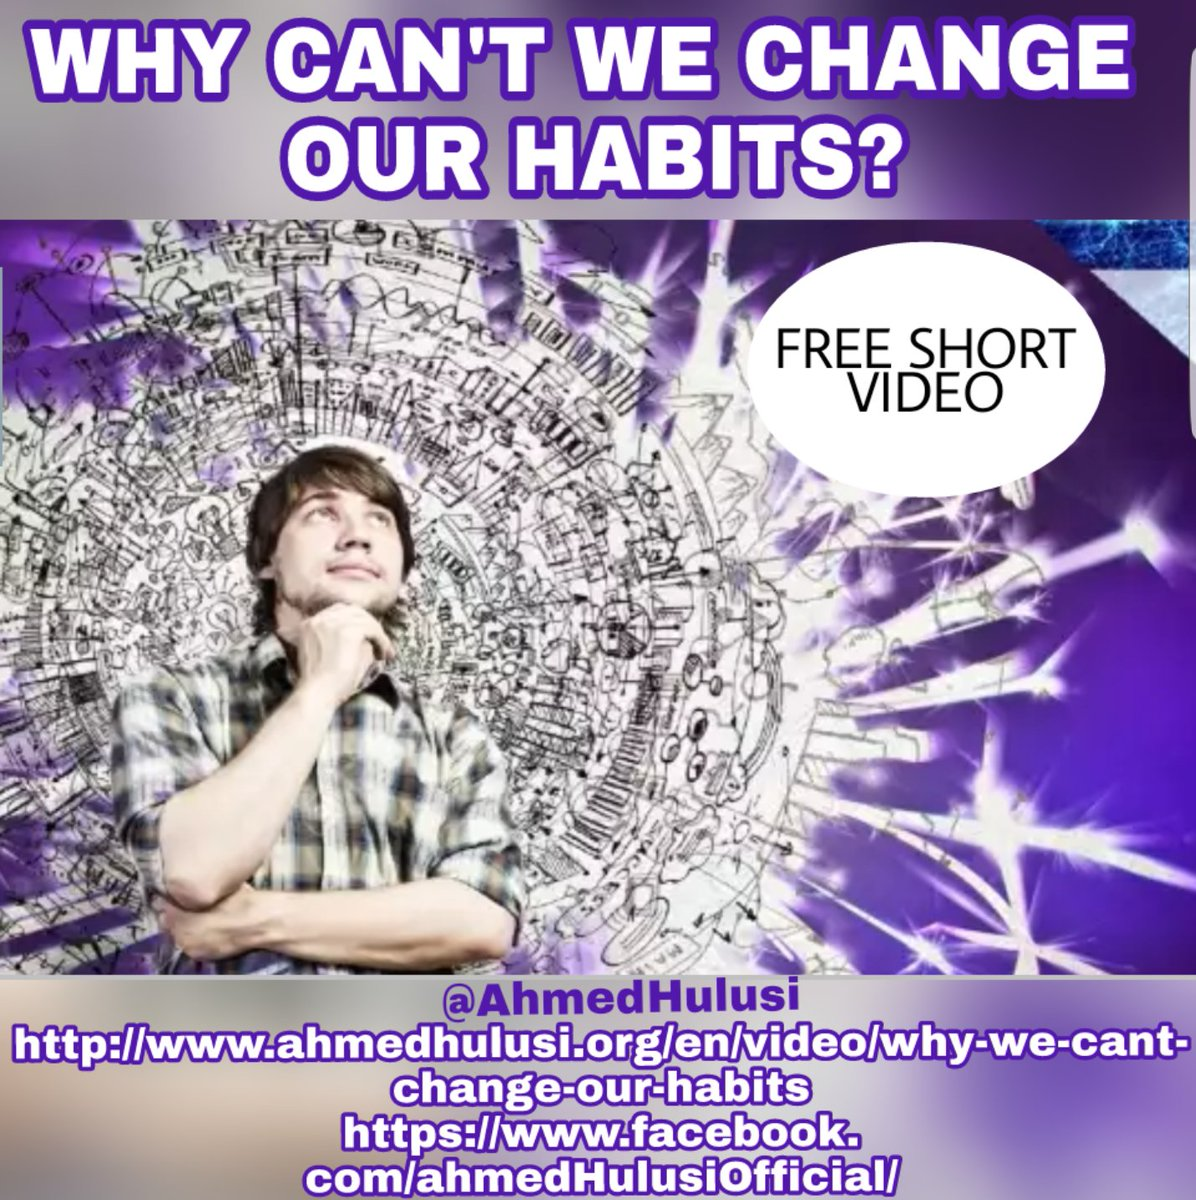 #Facebook @AhmedHulusi  #Free #Short #Video WHY CAN&#39;T WE #CHANGE OUR #HABITS?  http://www. ahmedhulusi.org/en/video/why-w e-cant-change-our-habits &nbsp; …   https://www. facebook.com/ahmedHulusiOff icial/ &nbsp; … <br>http://pic.twitter.com/b6N4IUMSPv